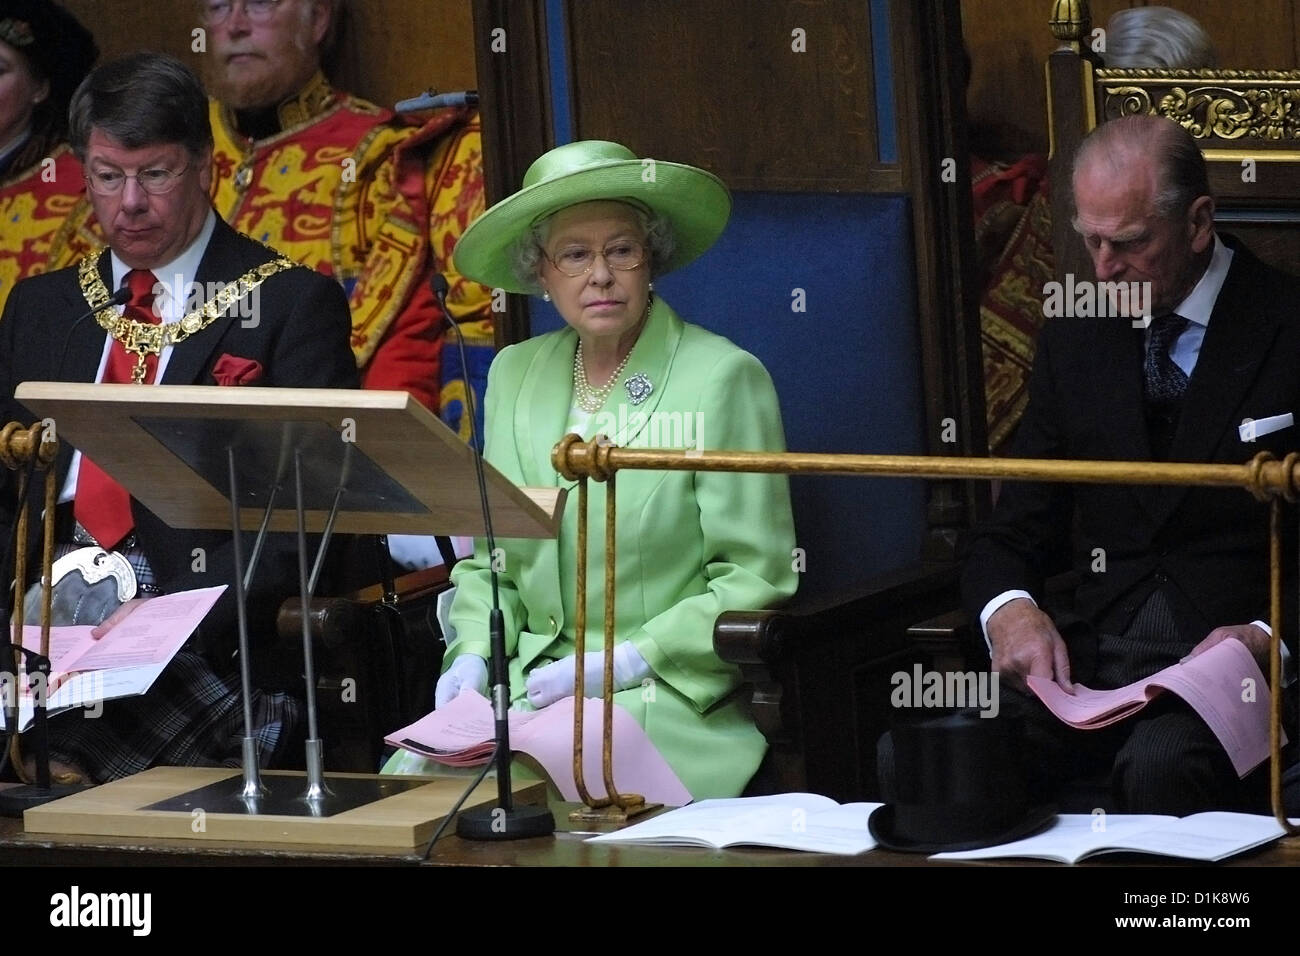 The Queen attends The General Assembly of The Church of Scotland in 2002 - Stock Image